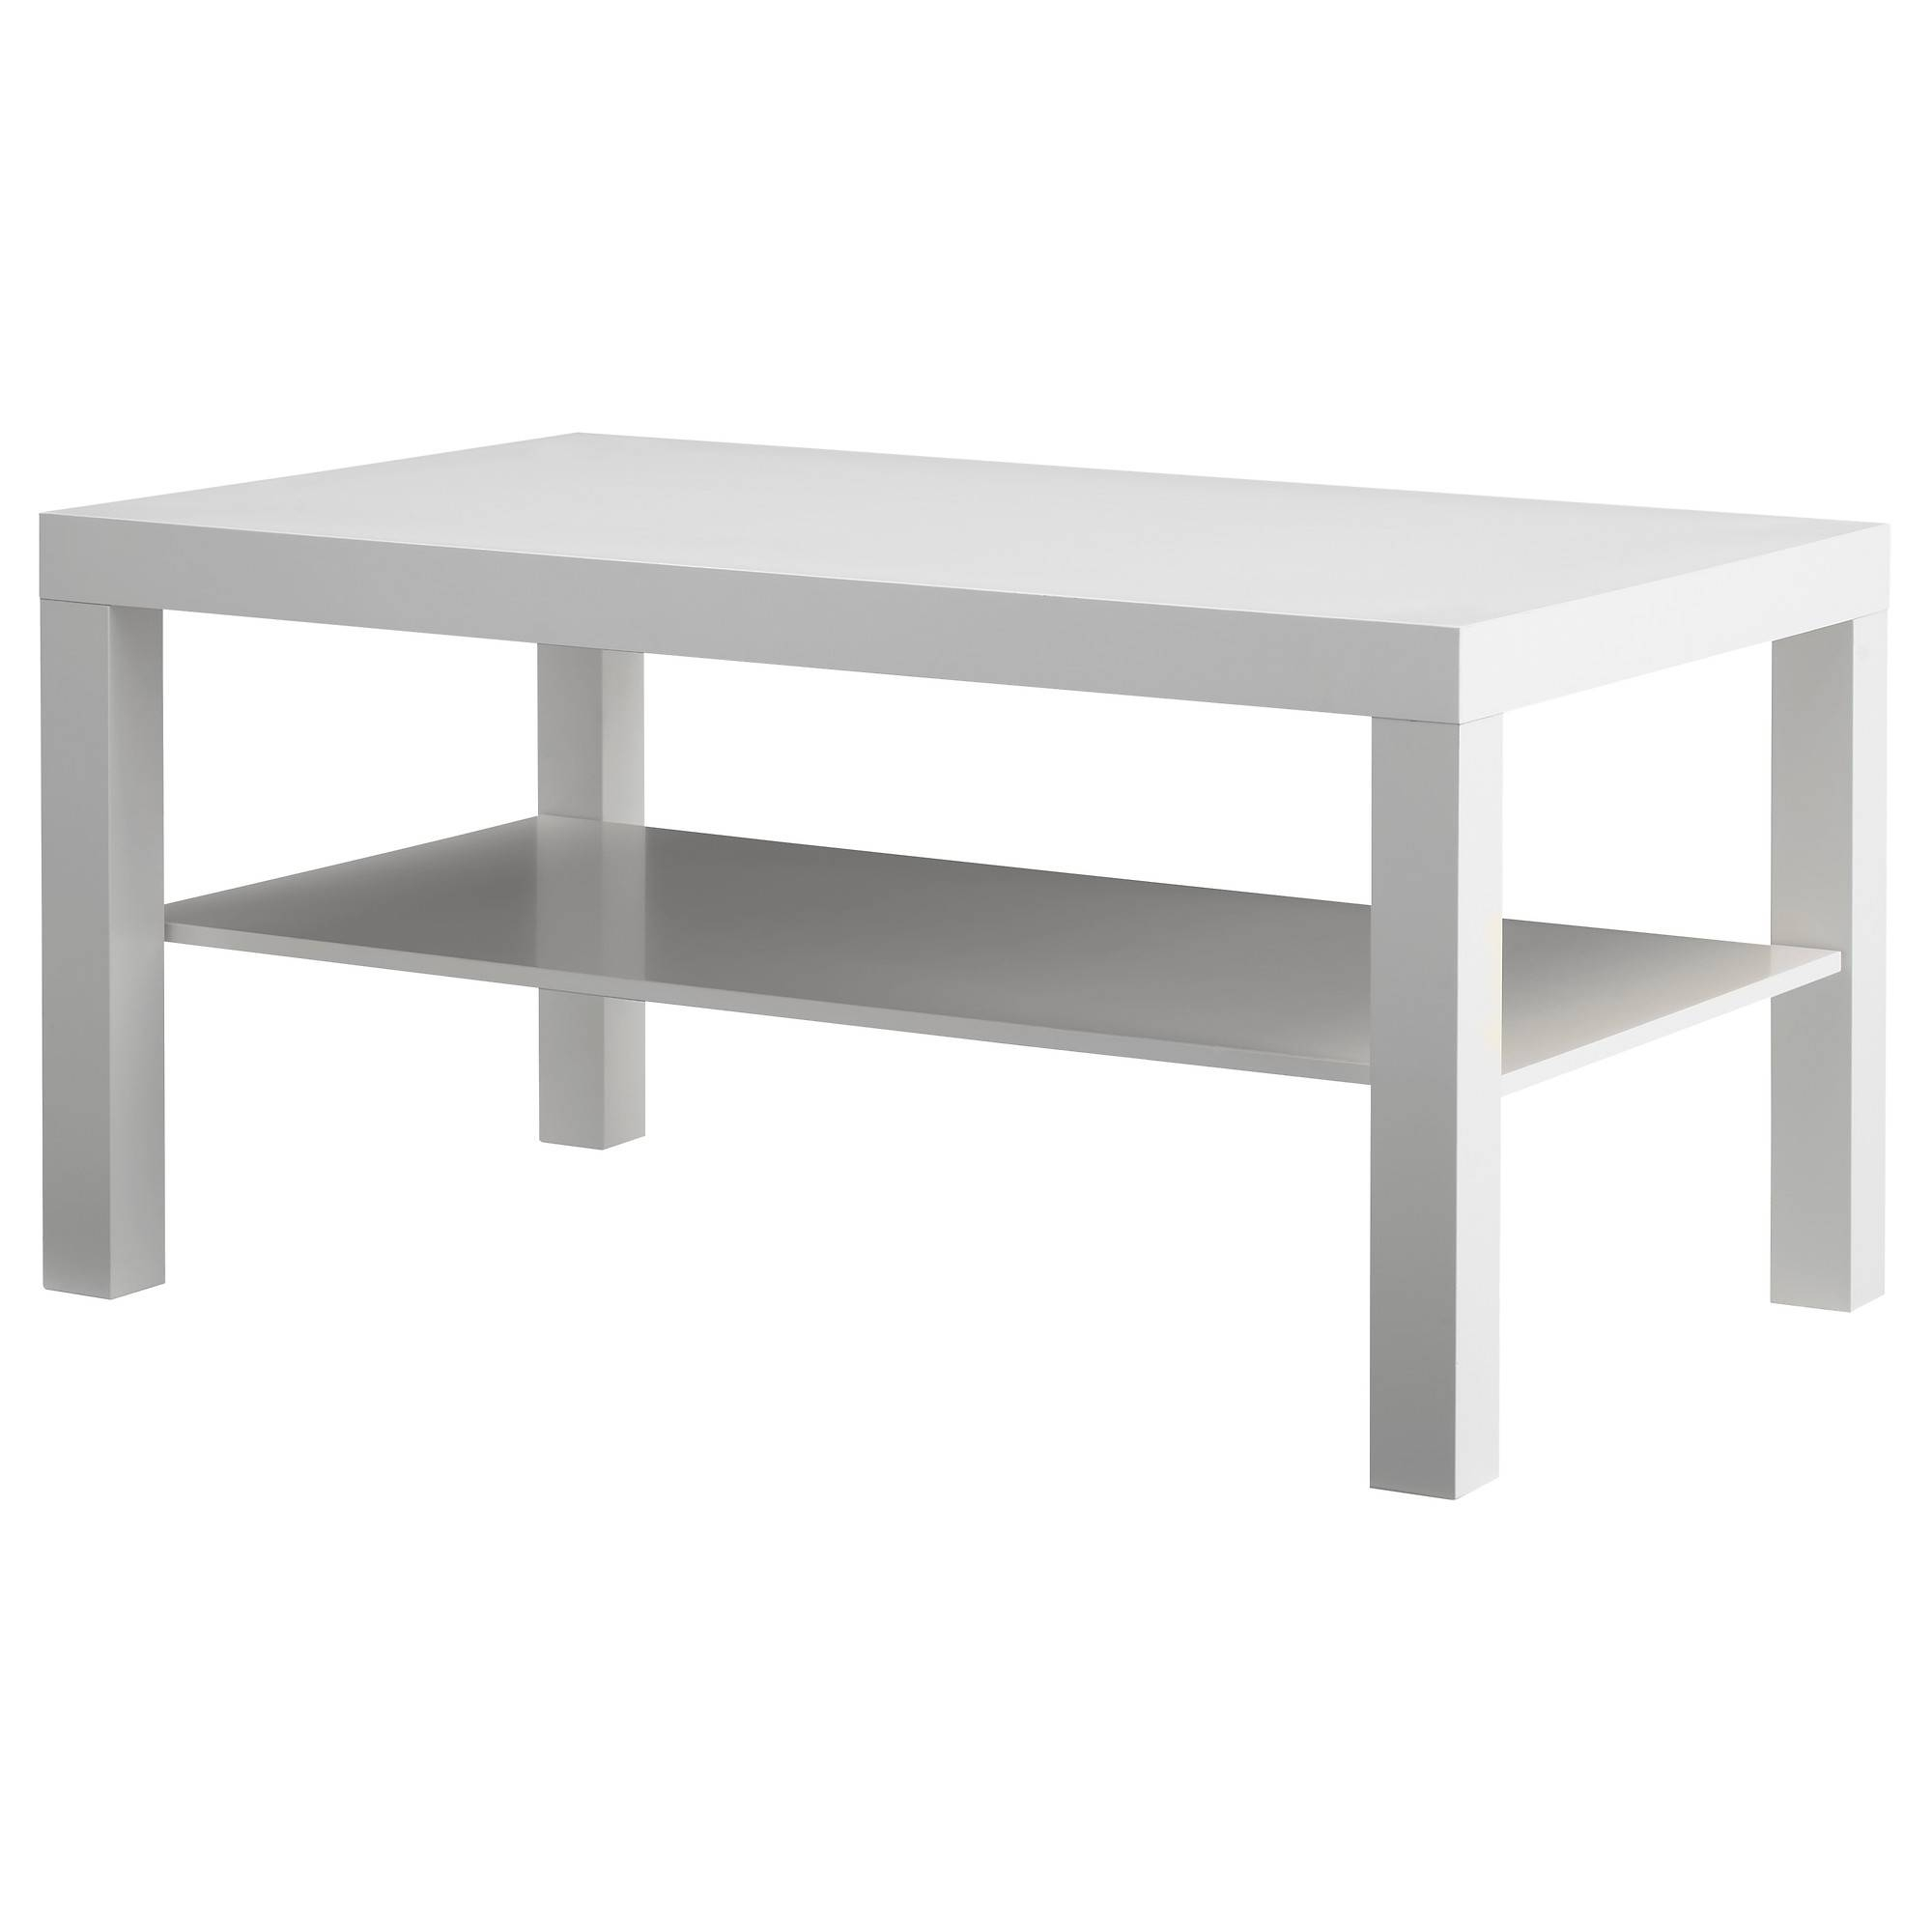 "Lack Coffee Table - Birch Effect, 35 3/8X21 5/8 "" - Ikea inside Birch Coffee Tables (Image 15 of 30)"